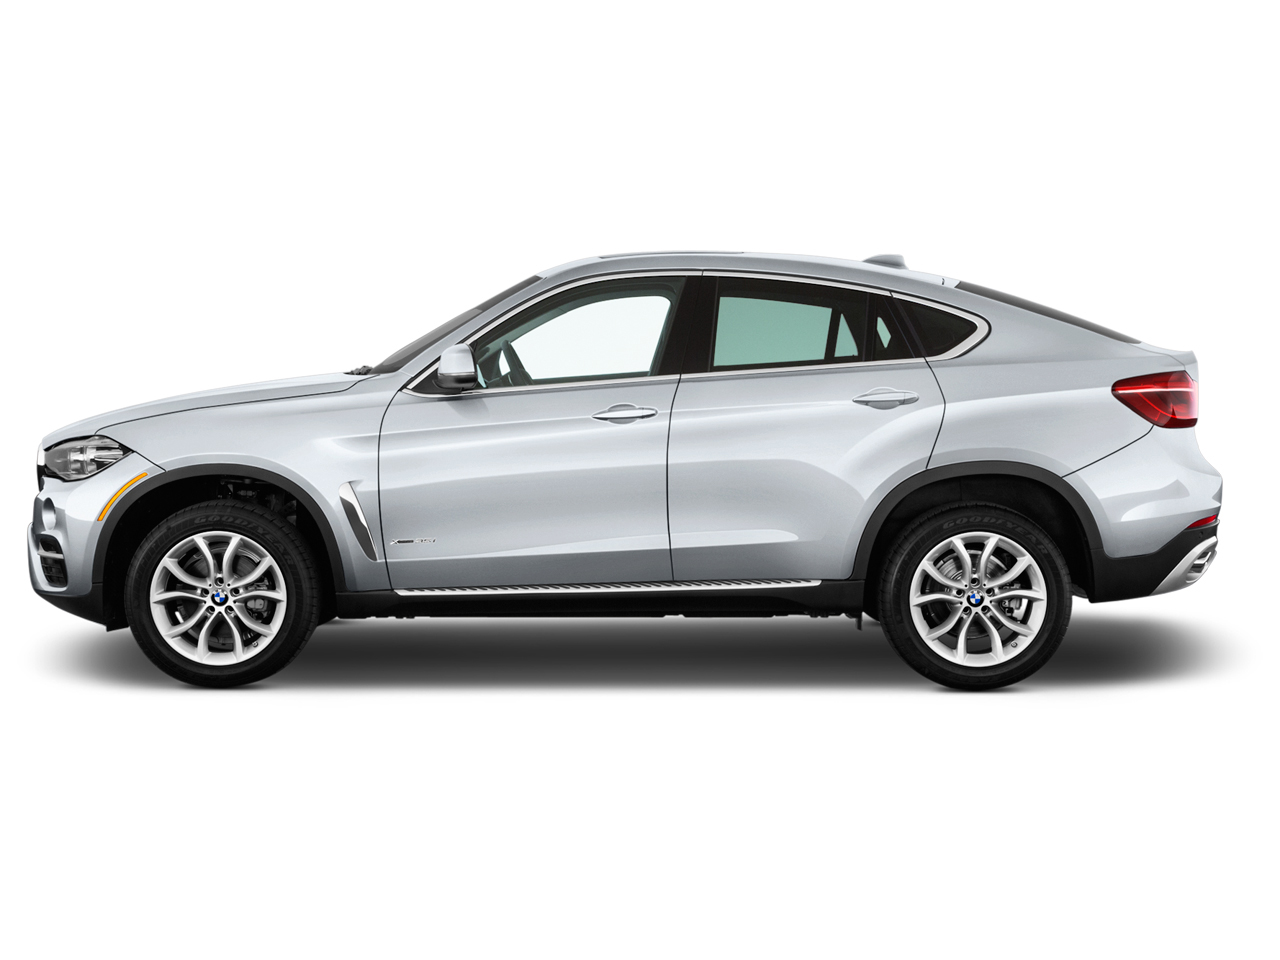 2016 bmw x6 rwd 4 door sdrive35i side exterior view 100526544. Black Bedroom Furniture Sets. Home Design Ideas